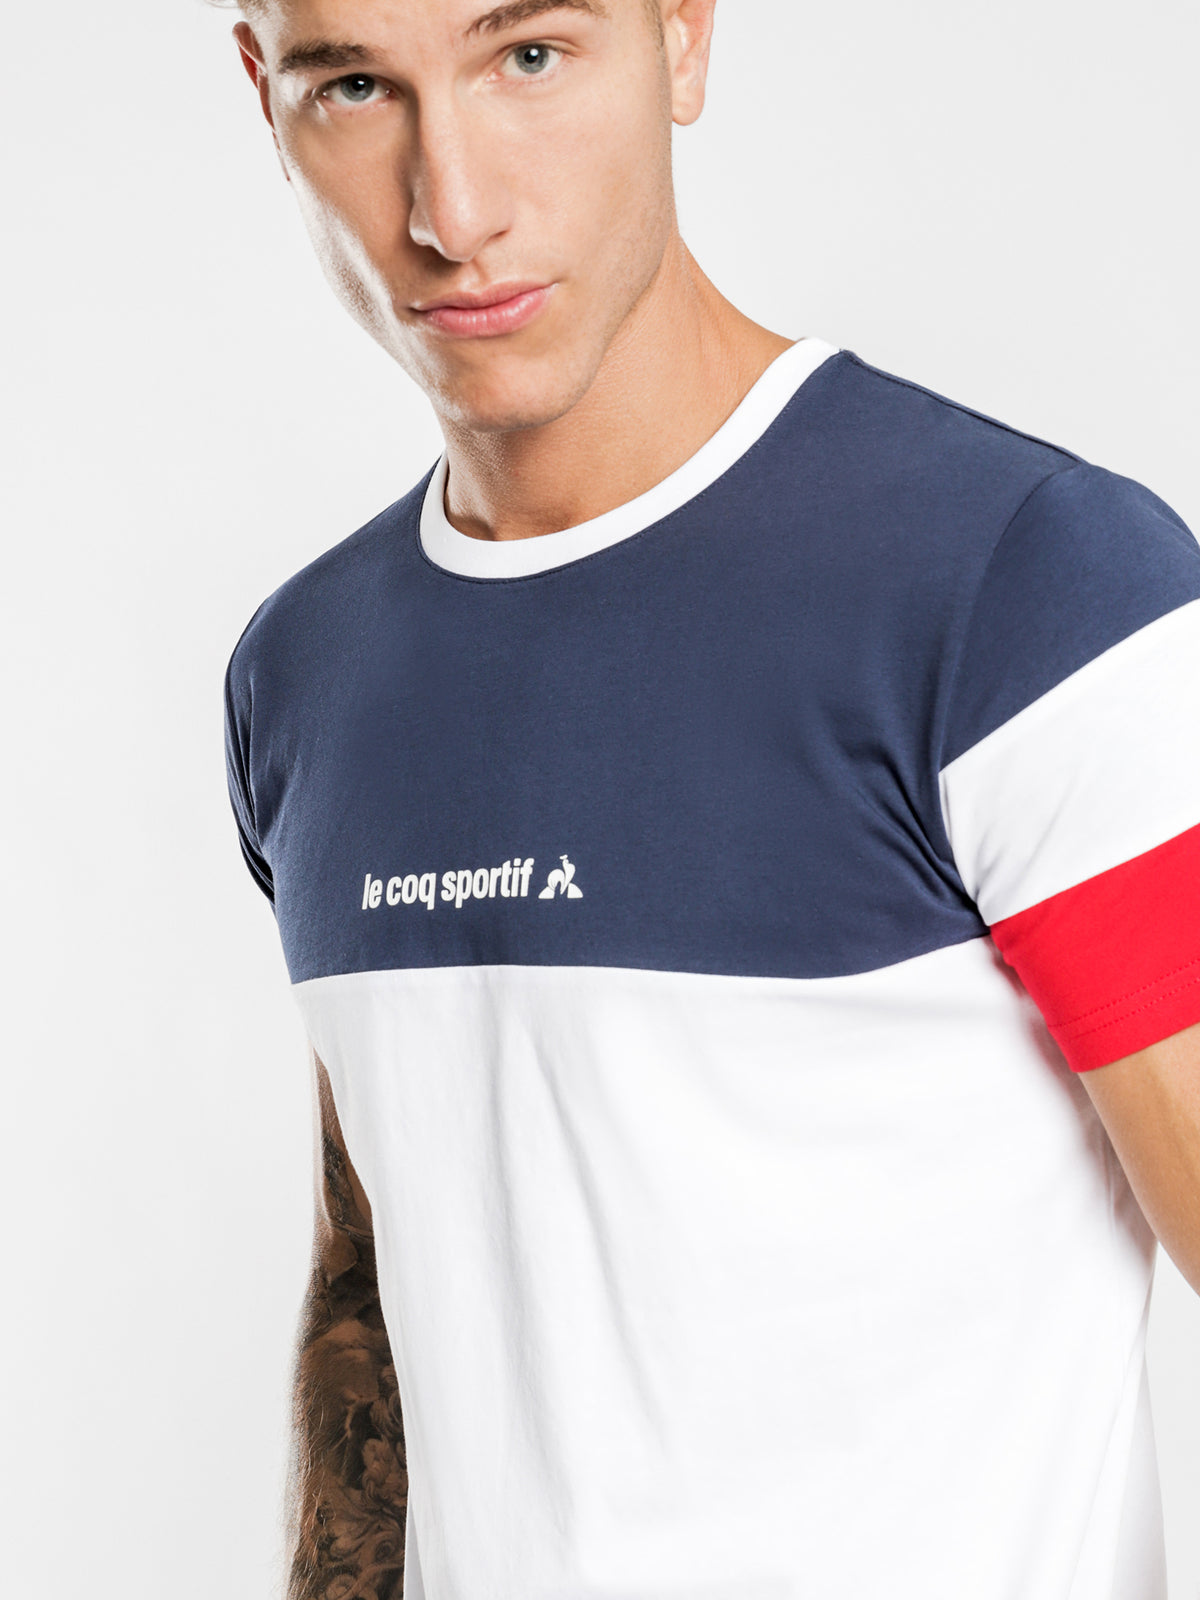 Tricolore T-Shirt in Navy White & Red